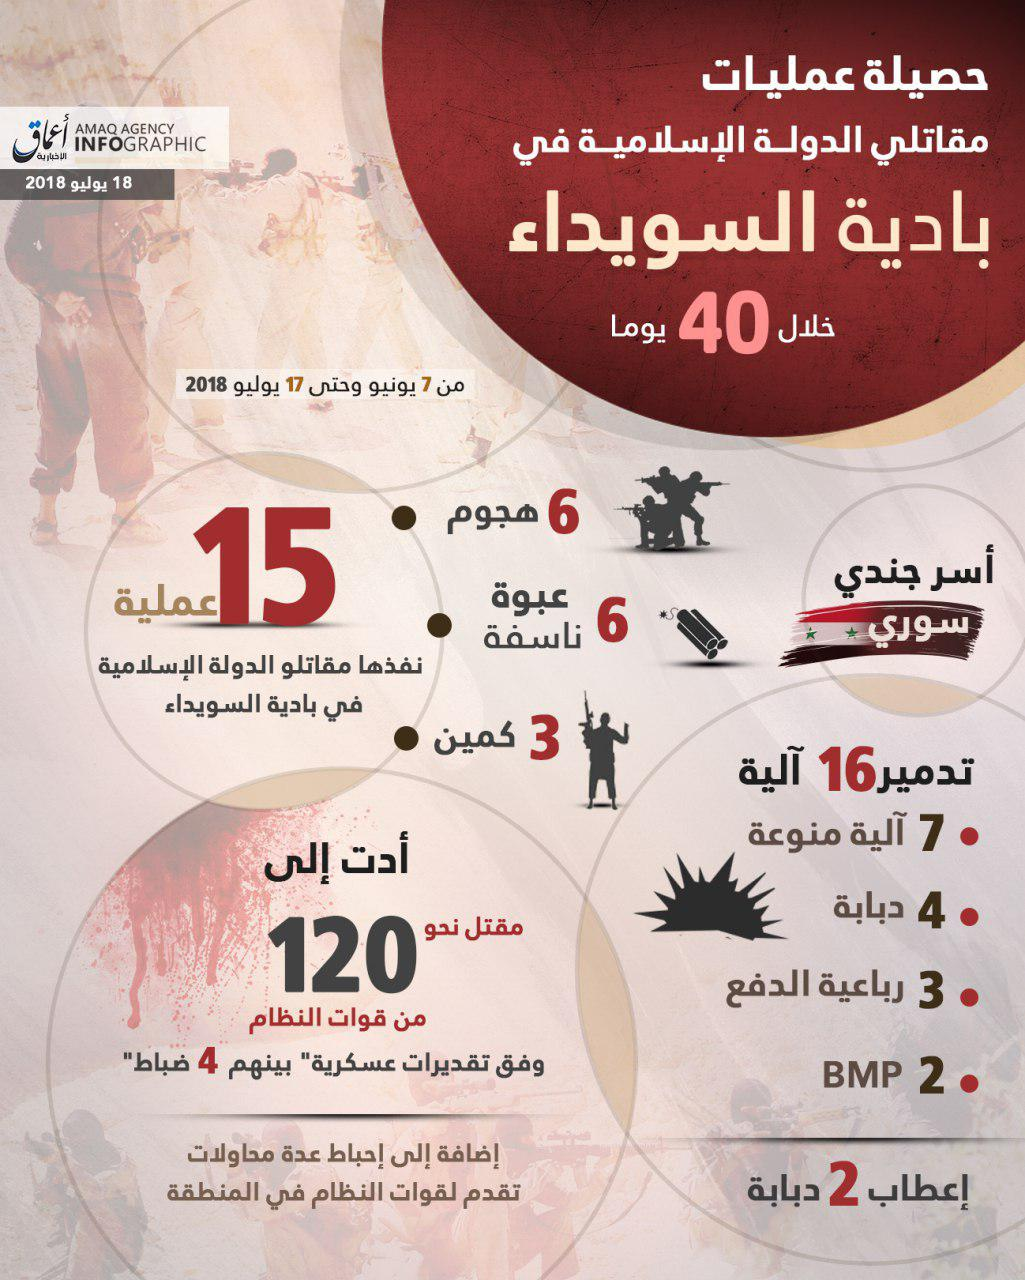 ISIS Claims It Killed 120 Syrian Soldiers During Last 40 Days (Infographic)